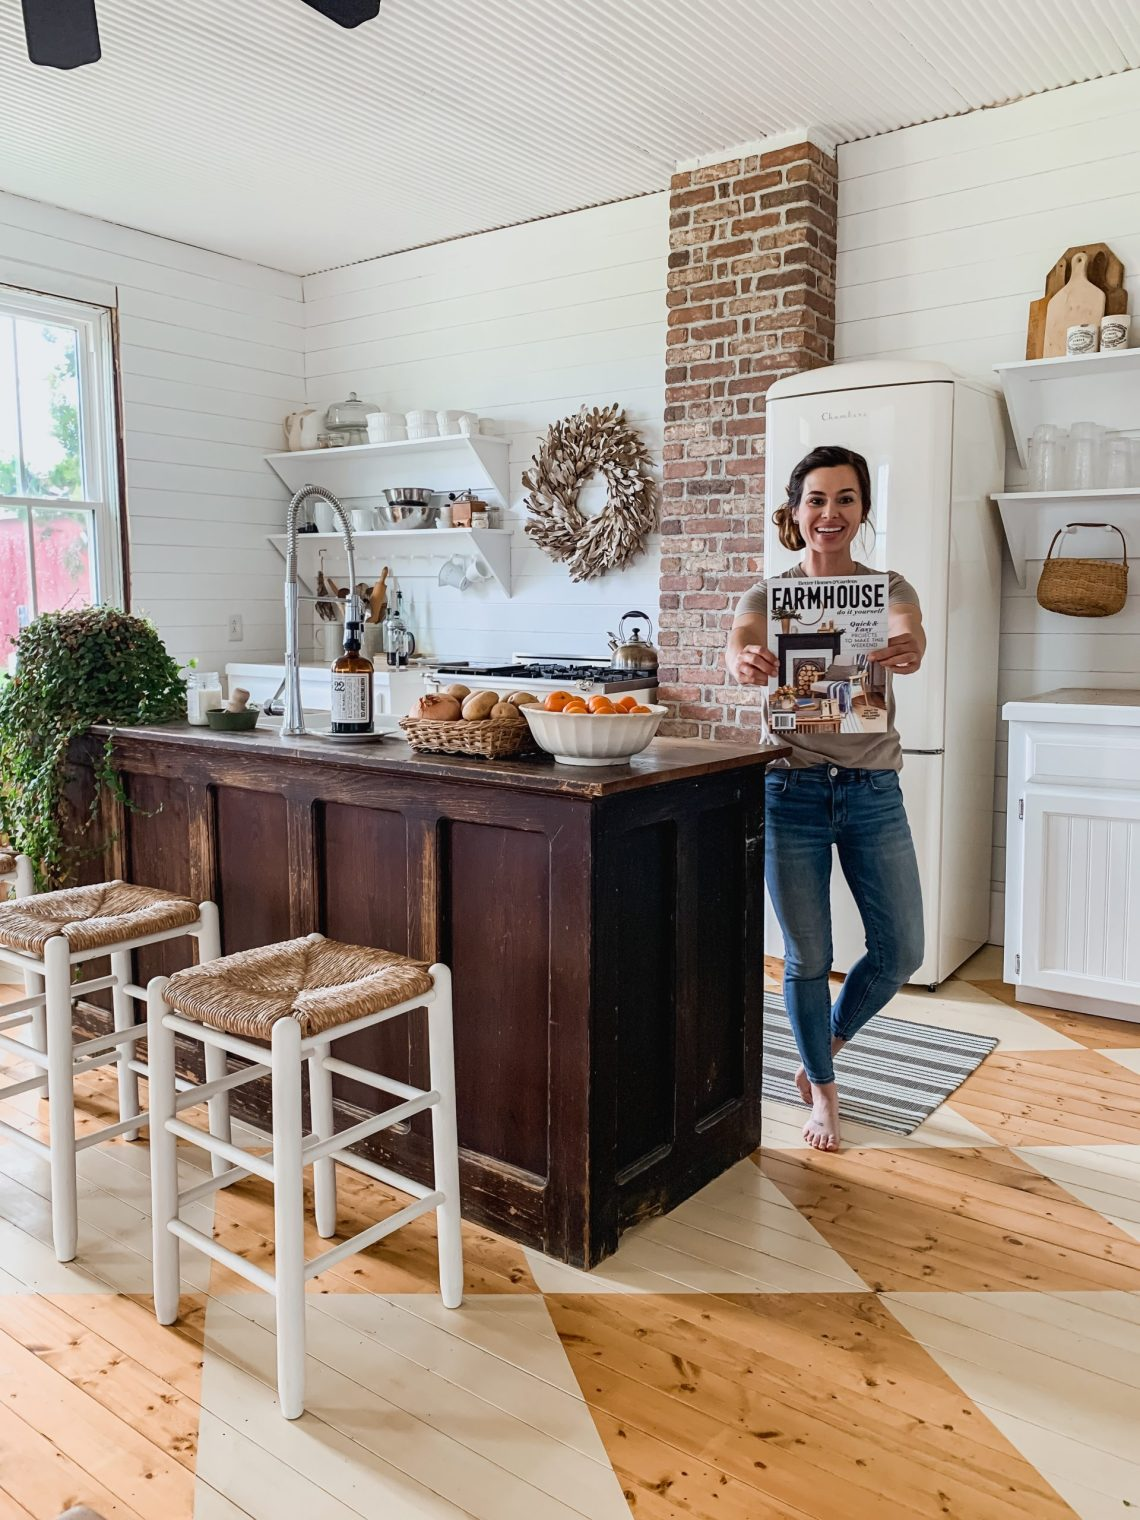 How To Build Kitchen Open Shelving with The Home Depot